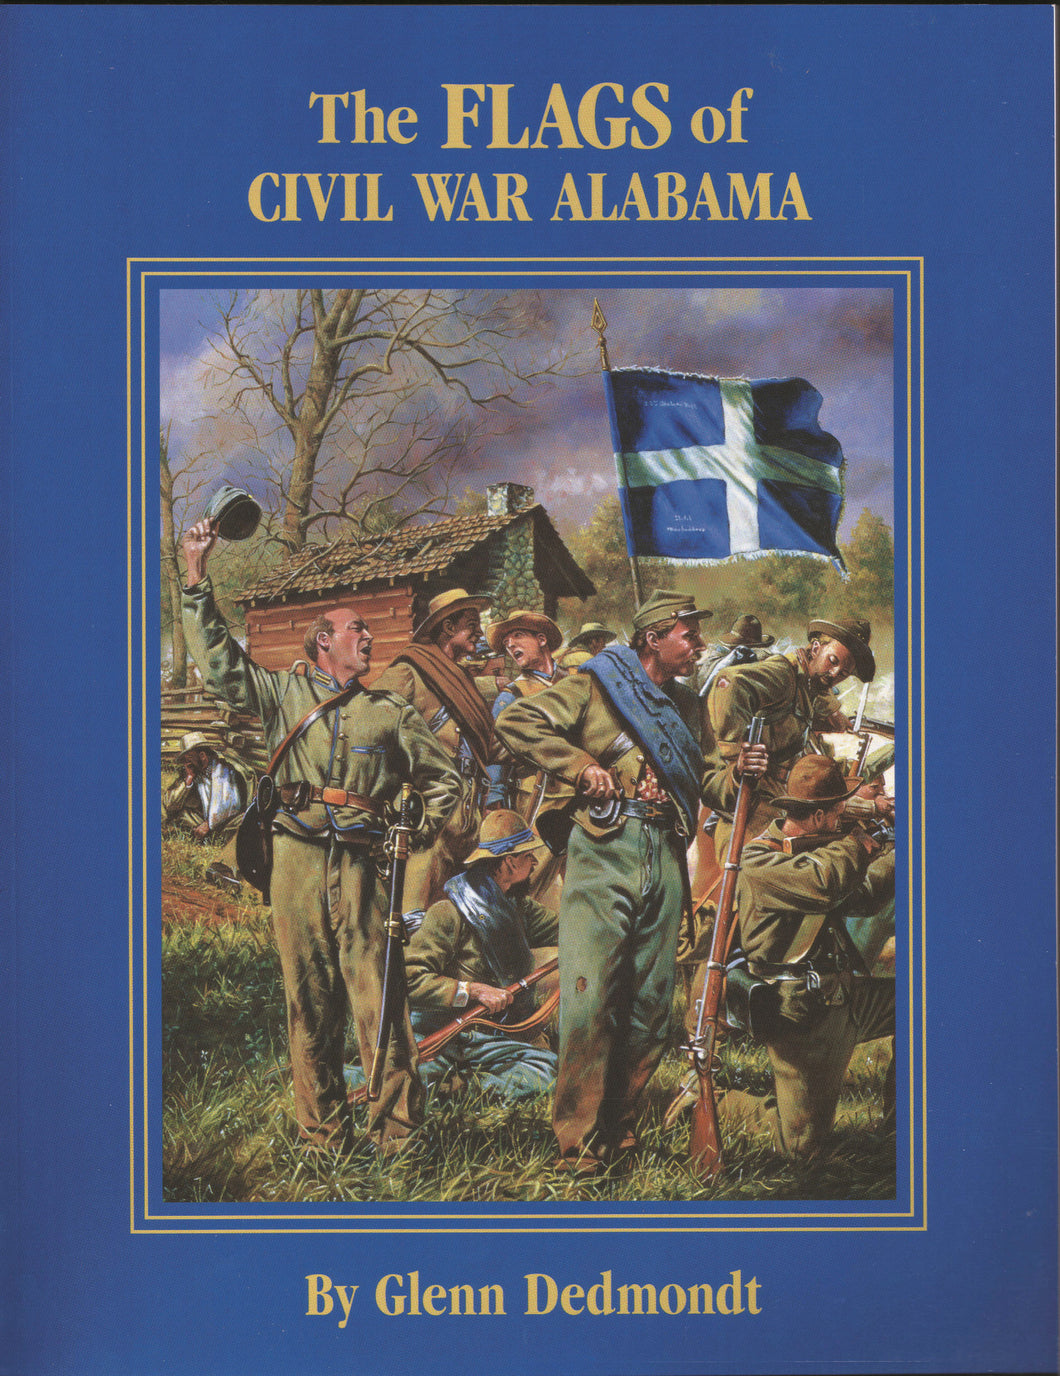 Books, The Flags of Civil War Alabama